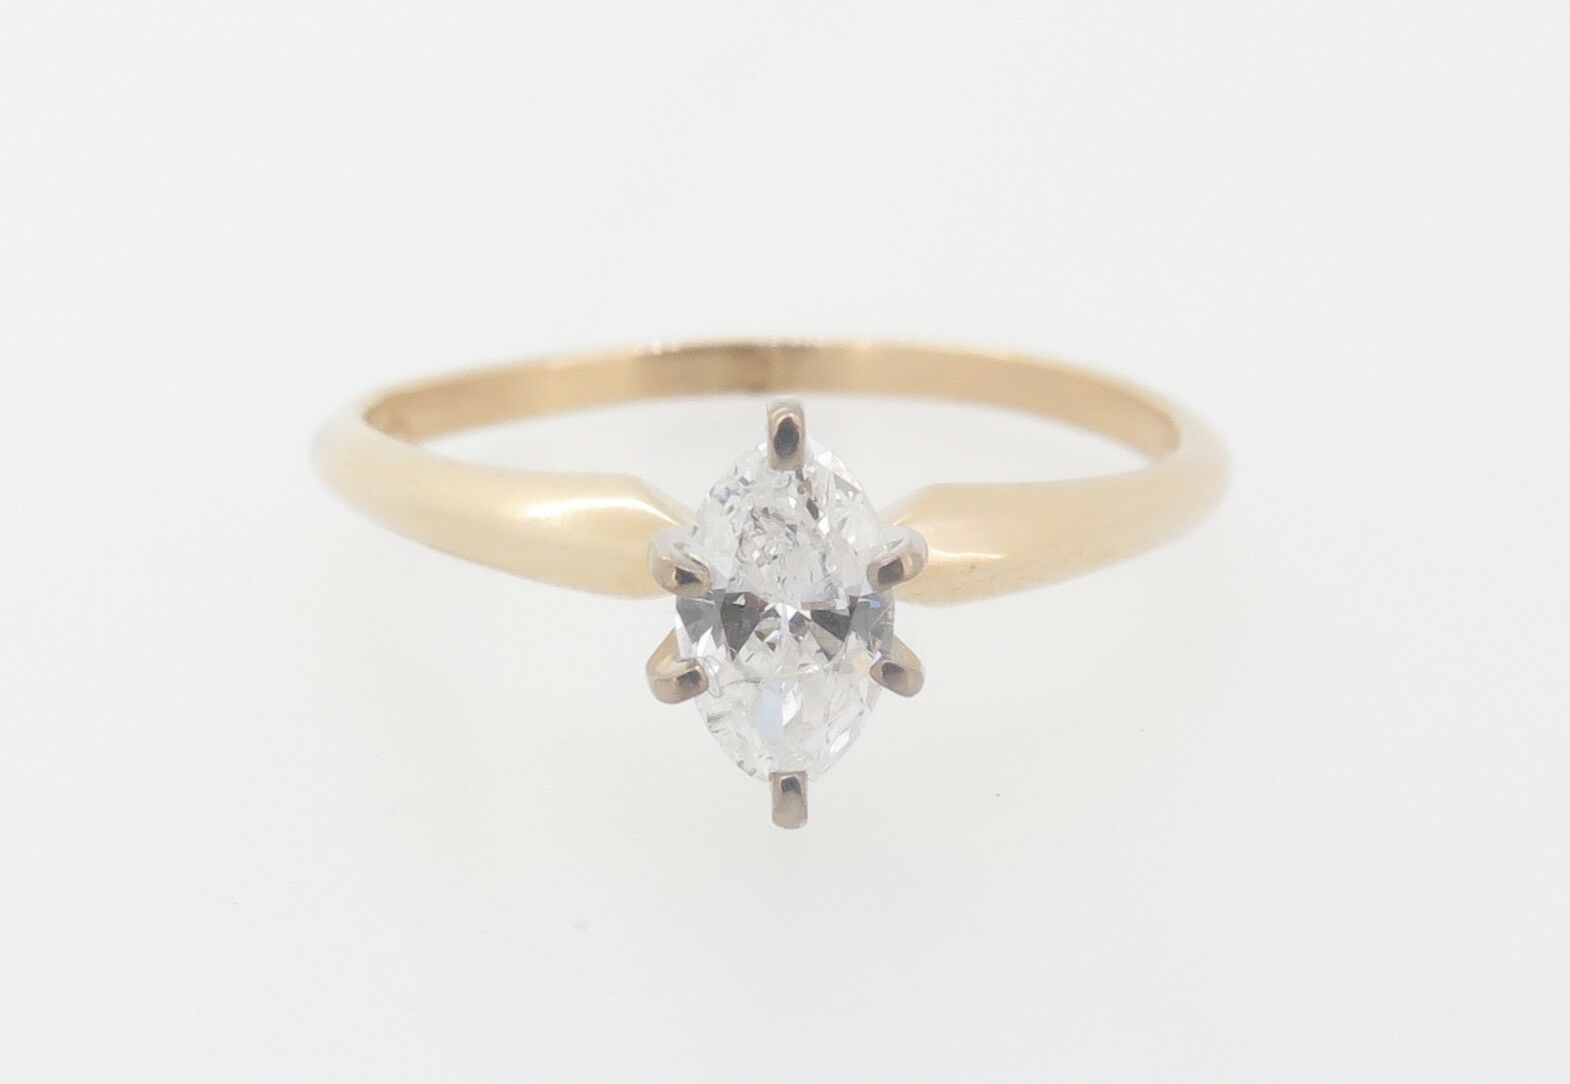 .Marquise Cut 0.37ct Diamond G Colour 14k Yellow gold Solitaire Ring Val  2320